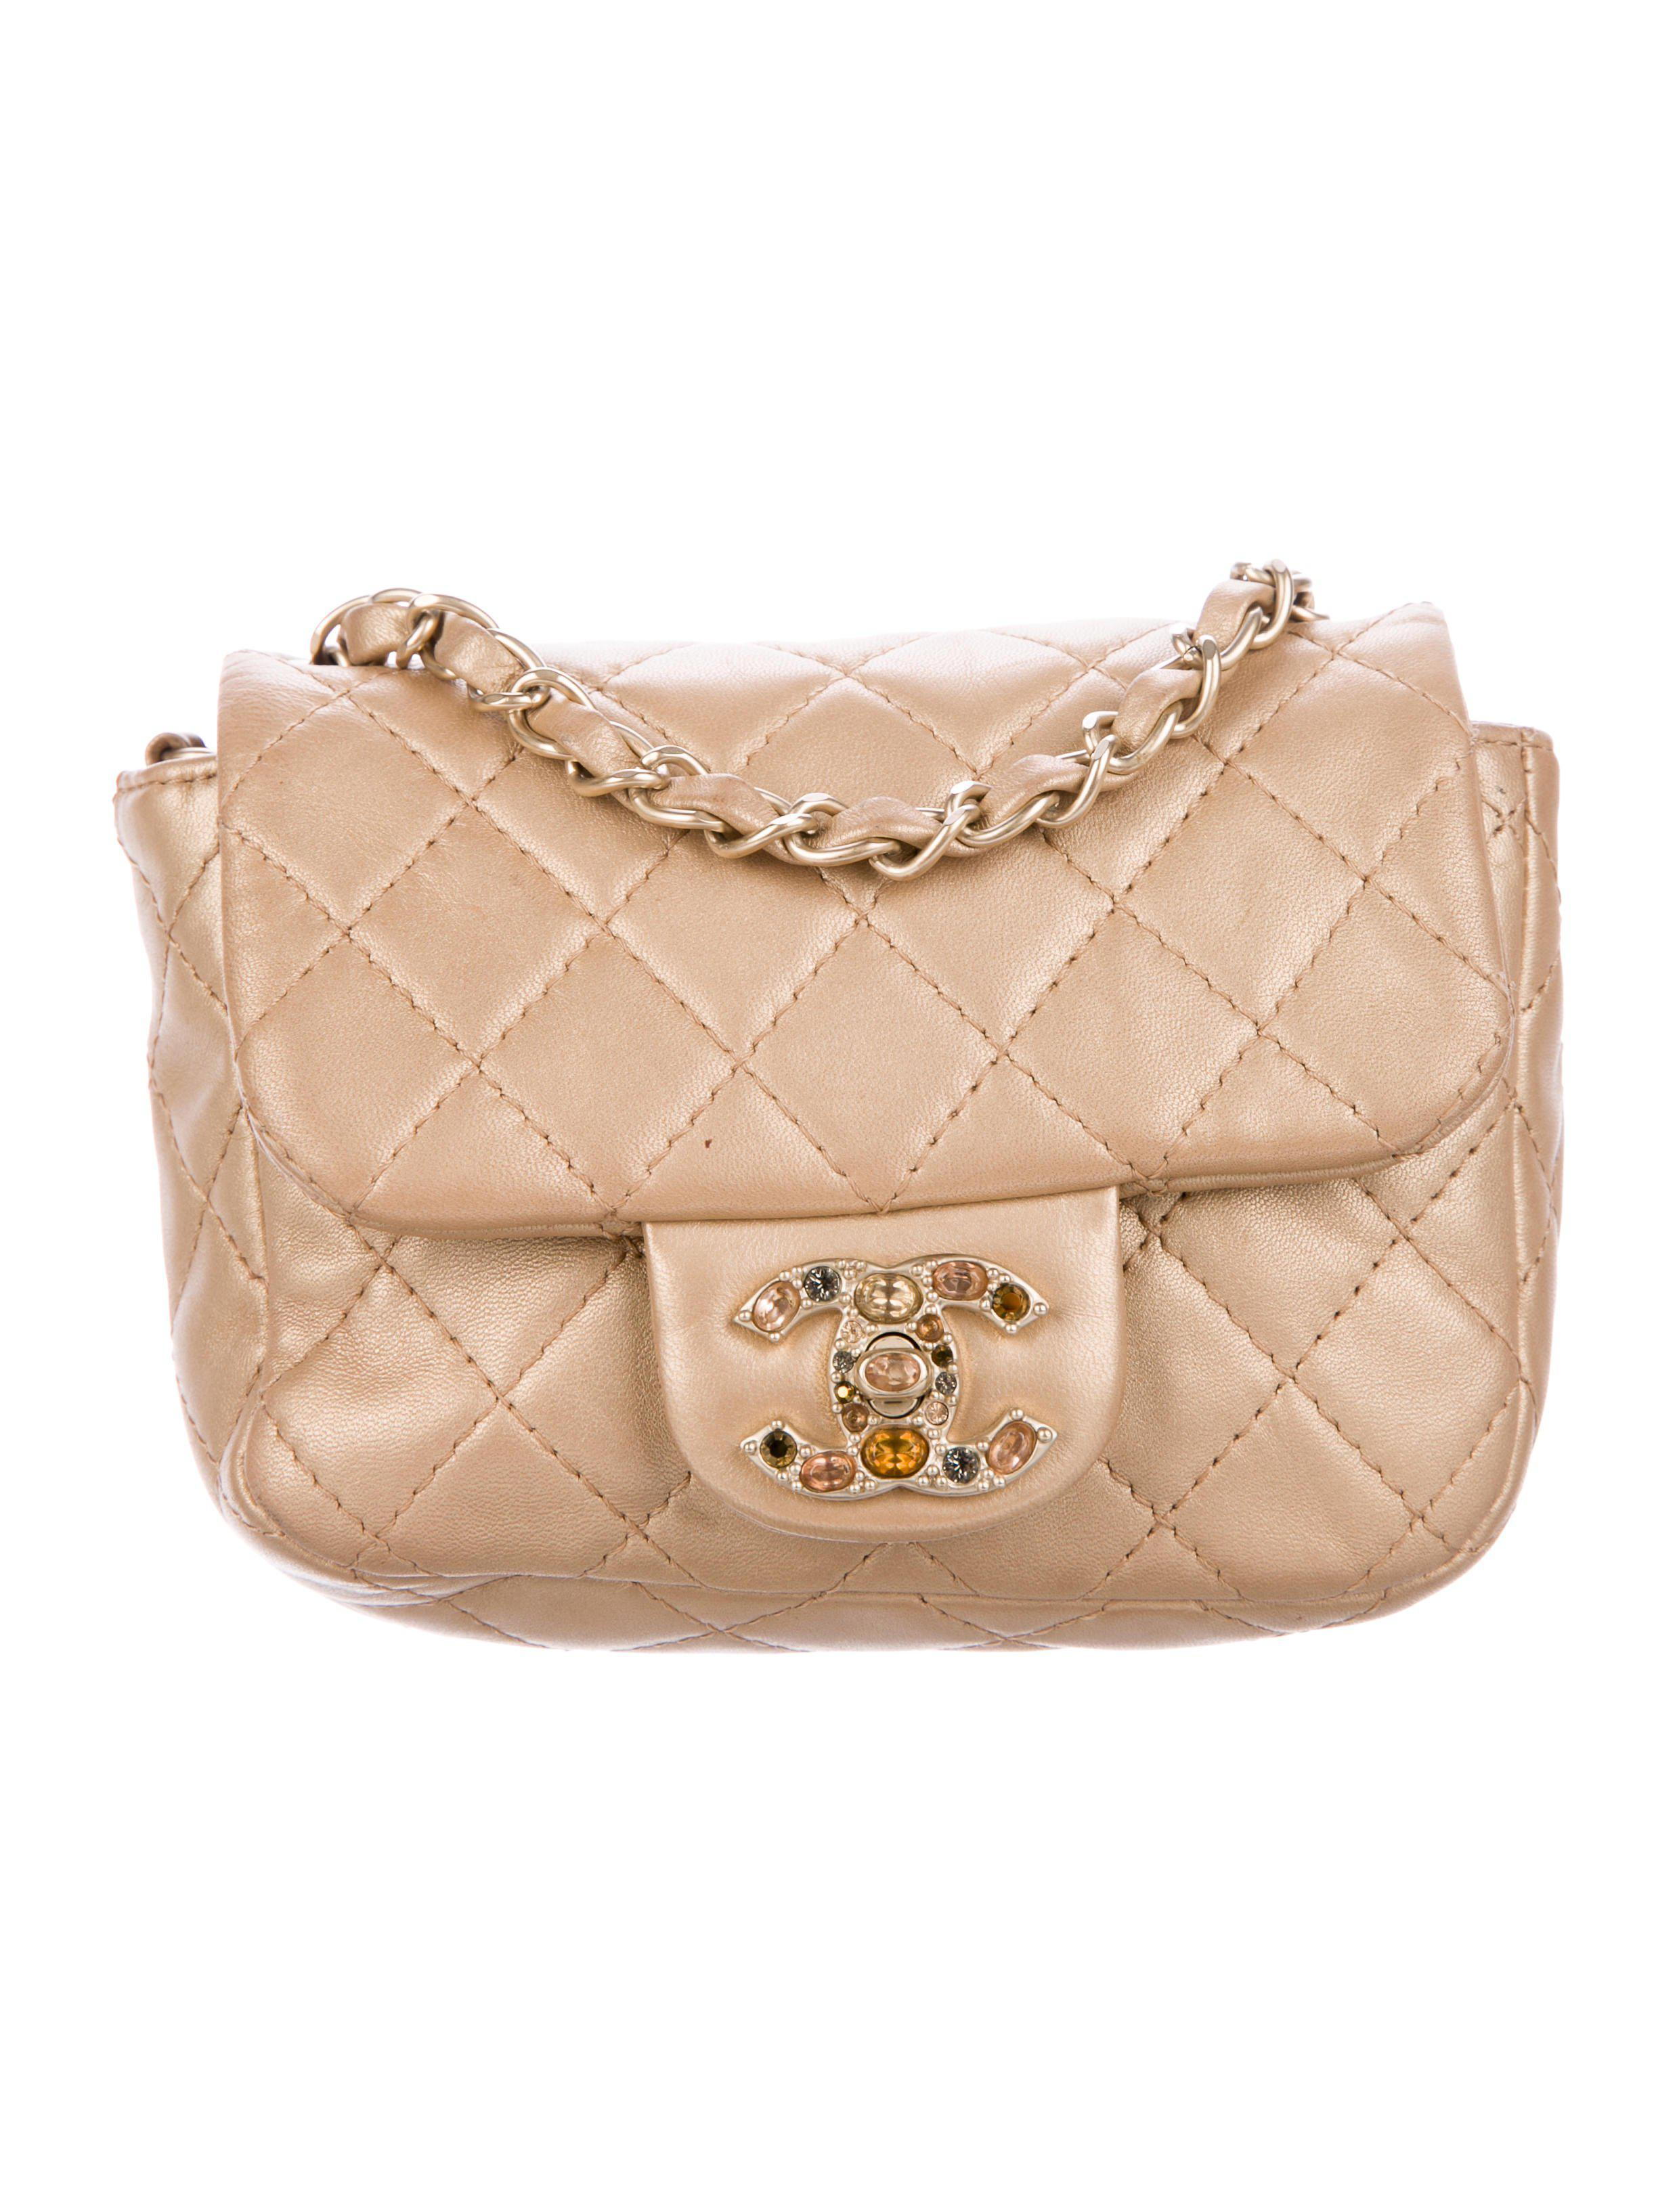 a47682fb0ccb Lyst - Chanel Embellished Square Classic Flap Bag in Metallic